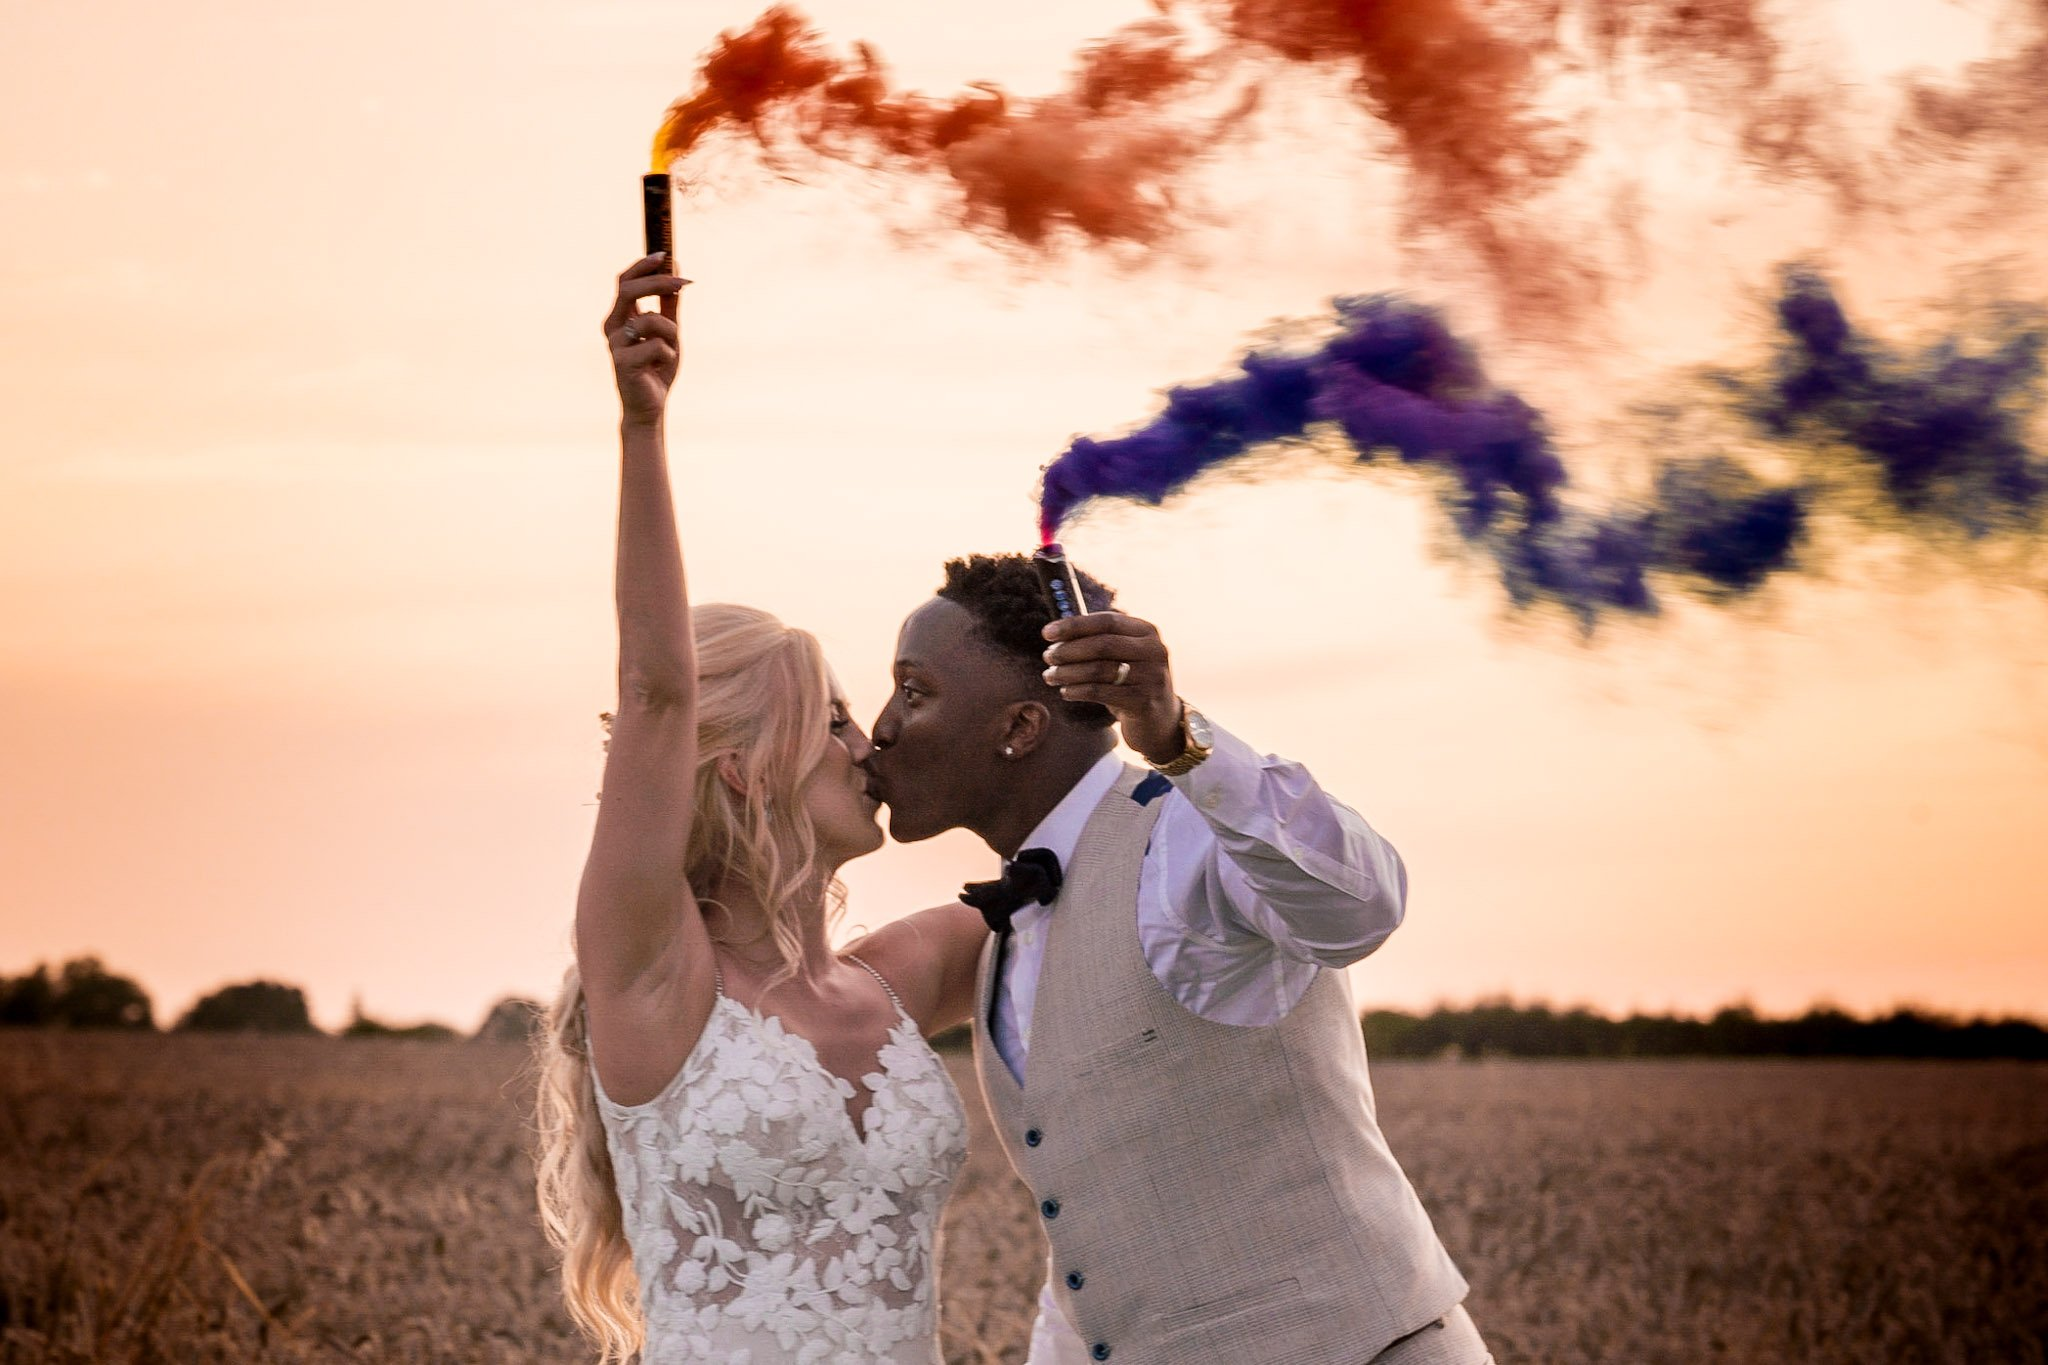 Your Favourite Frame YFFUK Mwasuku Norton Fields Atherstone sunset in front of the wheat fields golden skies groom and bride leaning close purple and orange smoke effects